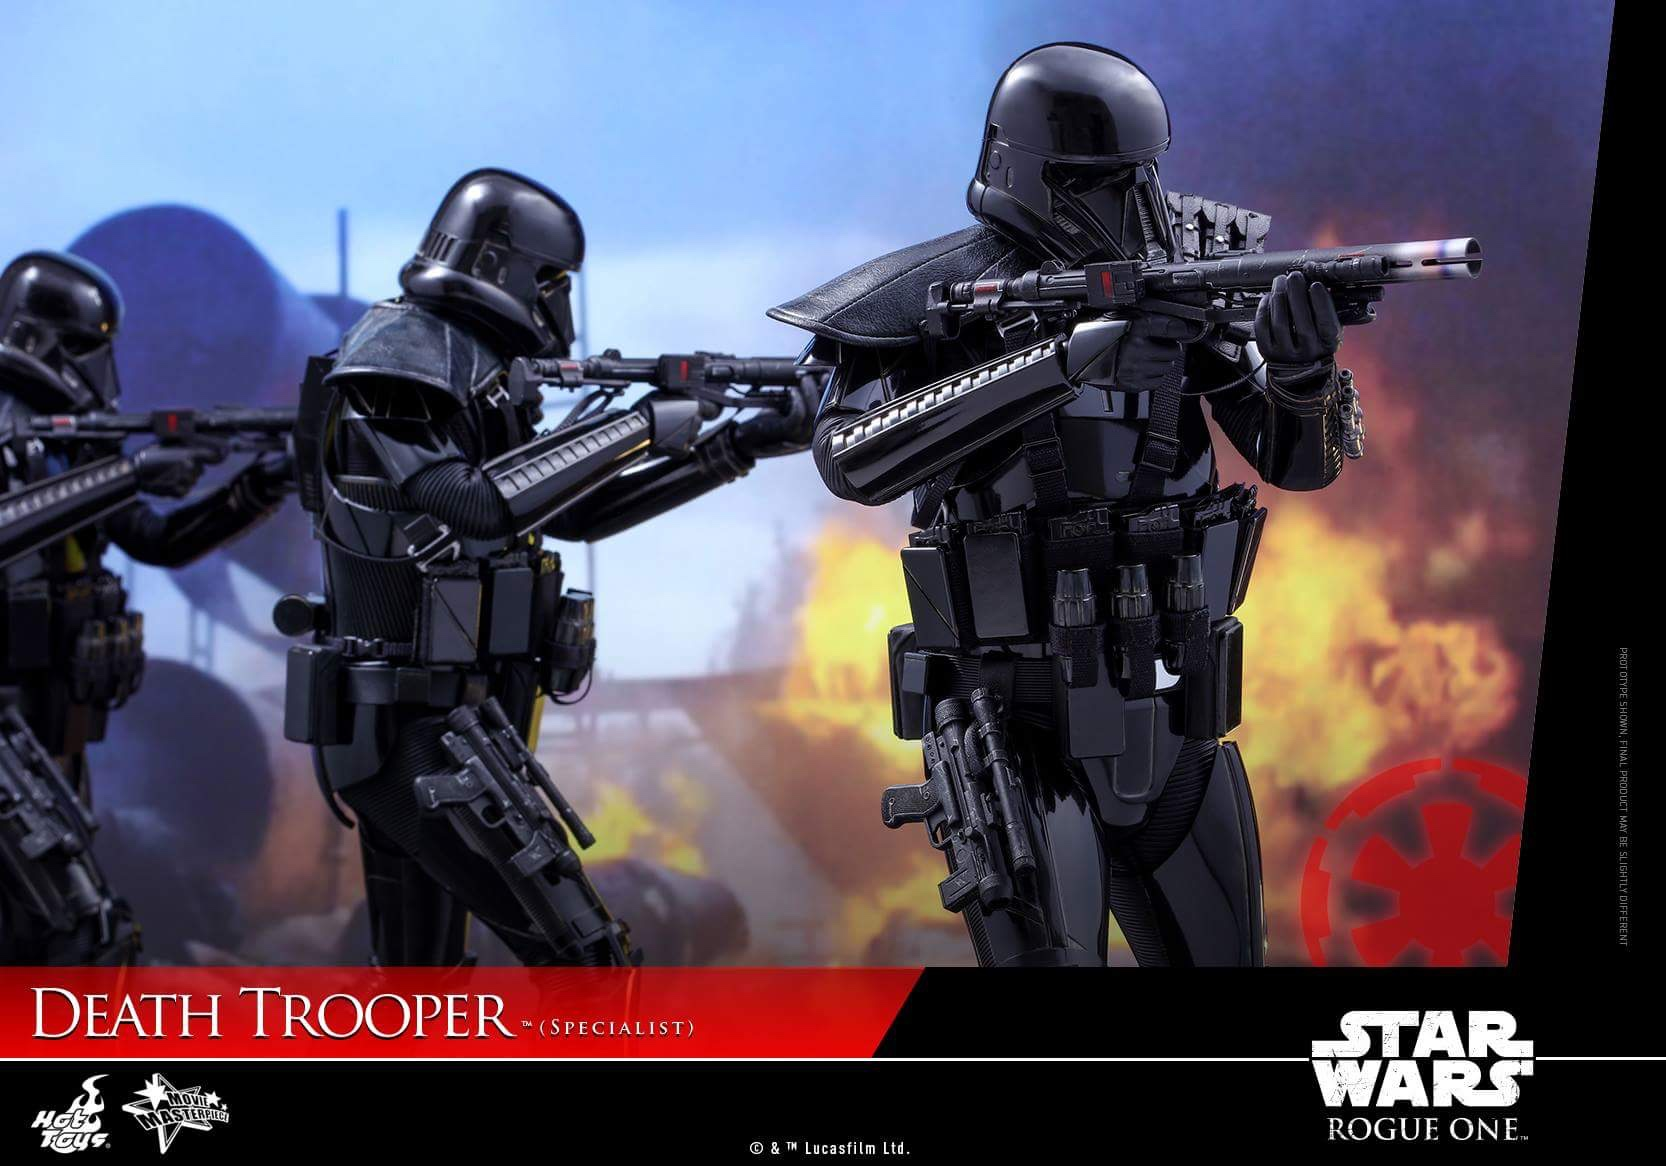 death troopers When rogue one: a star wars story jumps back in time to explore events that happened shortly before a new hope, moviegoers will meet the death troopers here's where these black-clad operatives originated, according to the director.